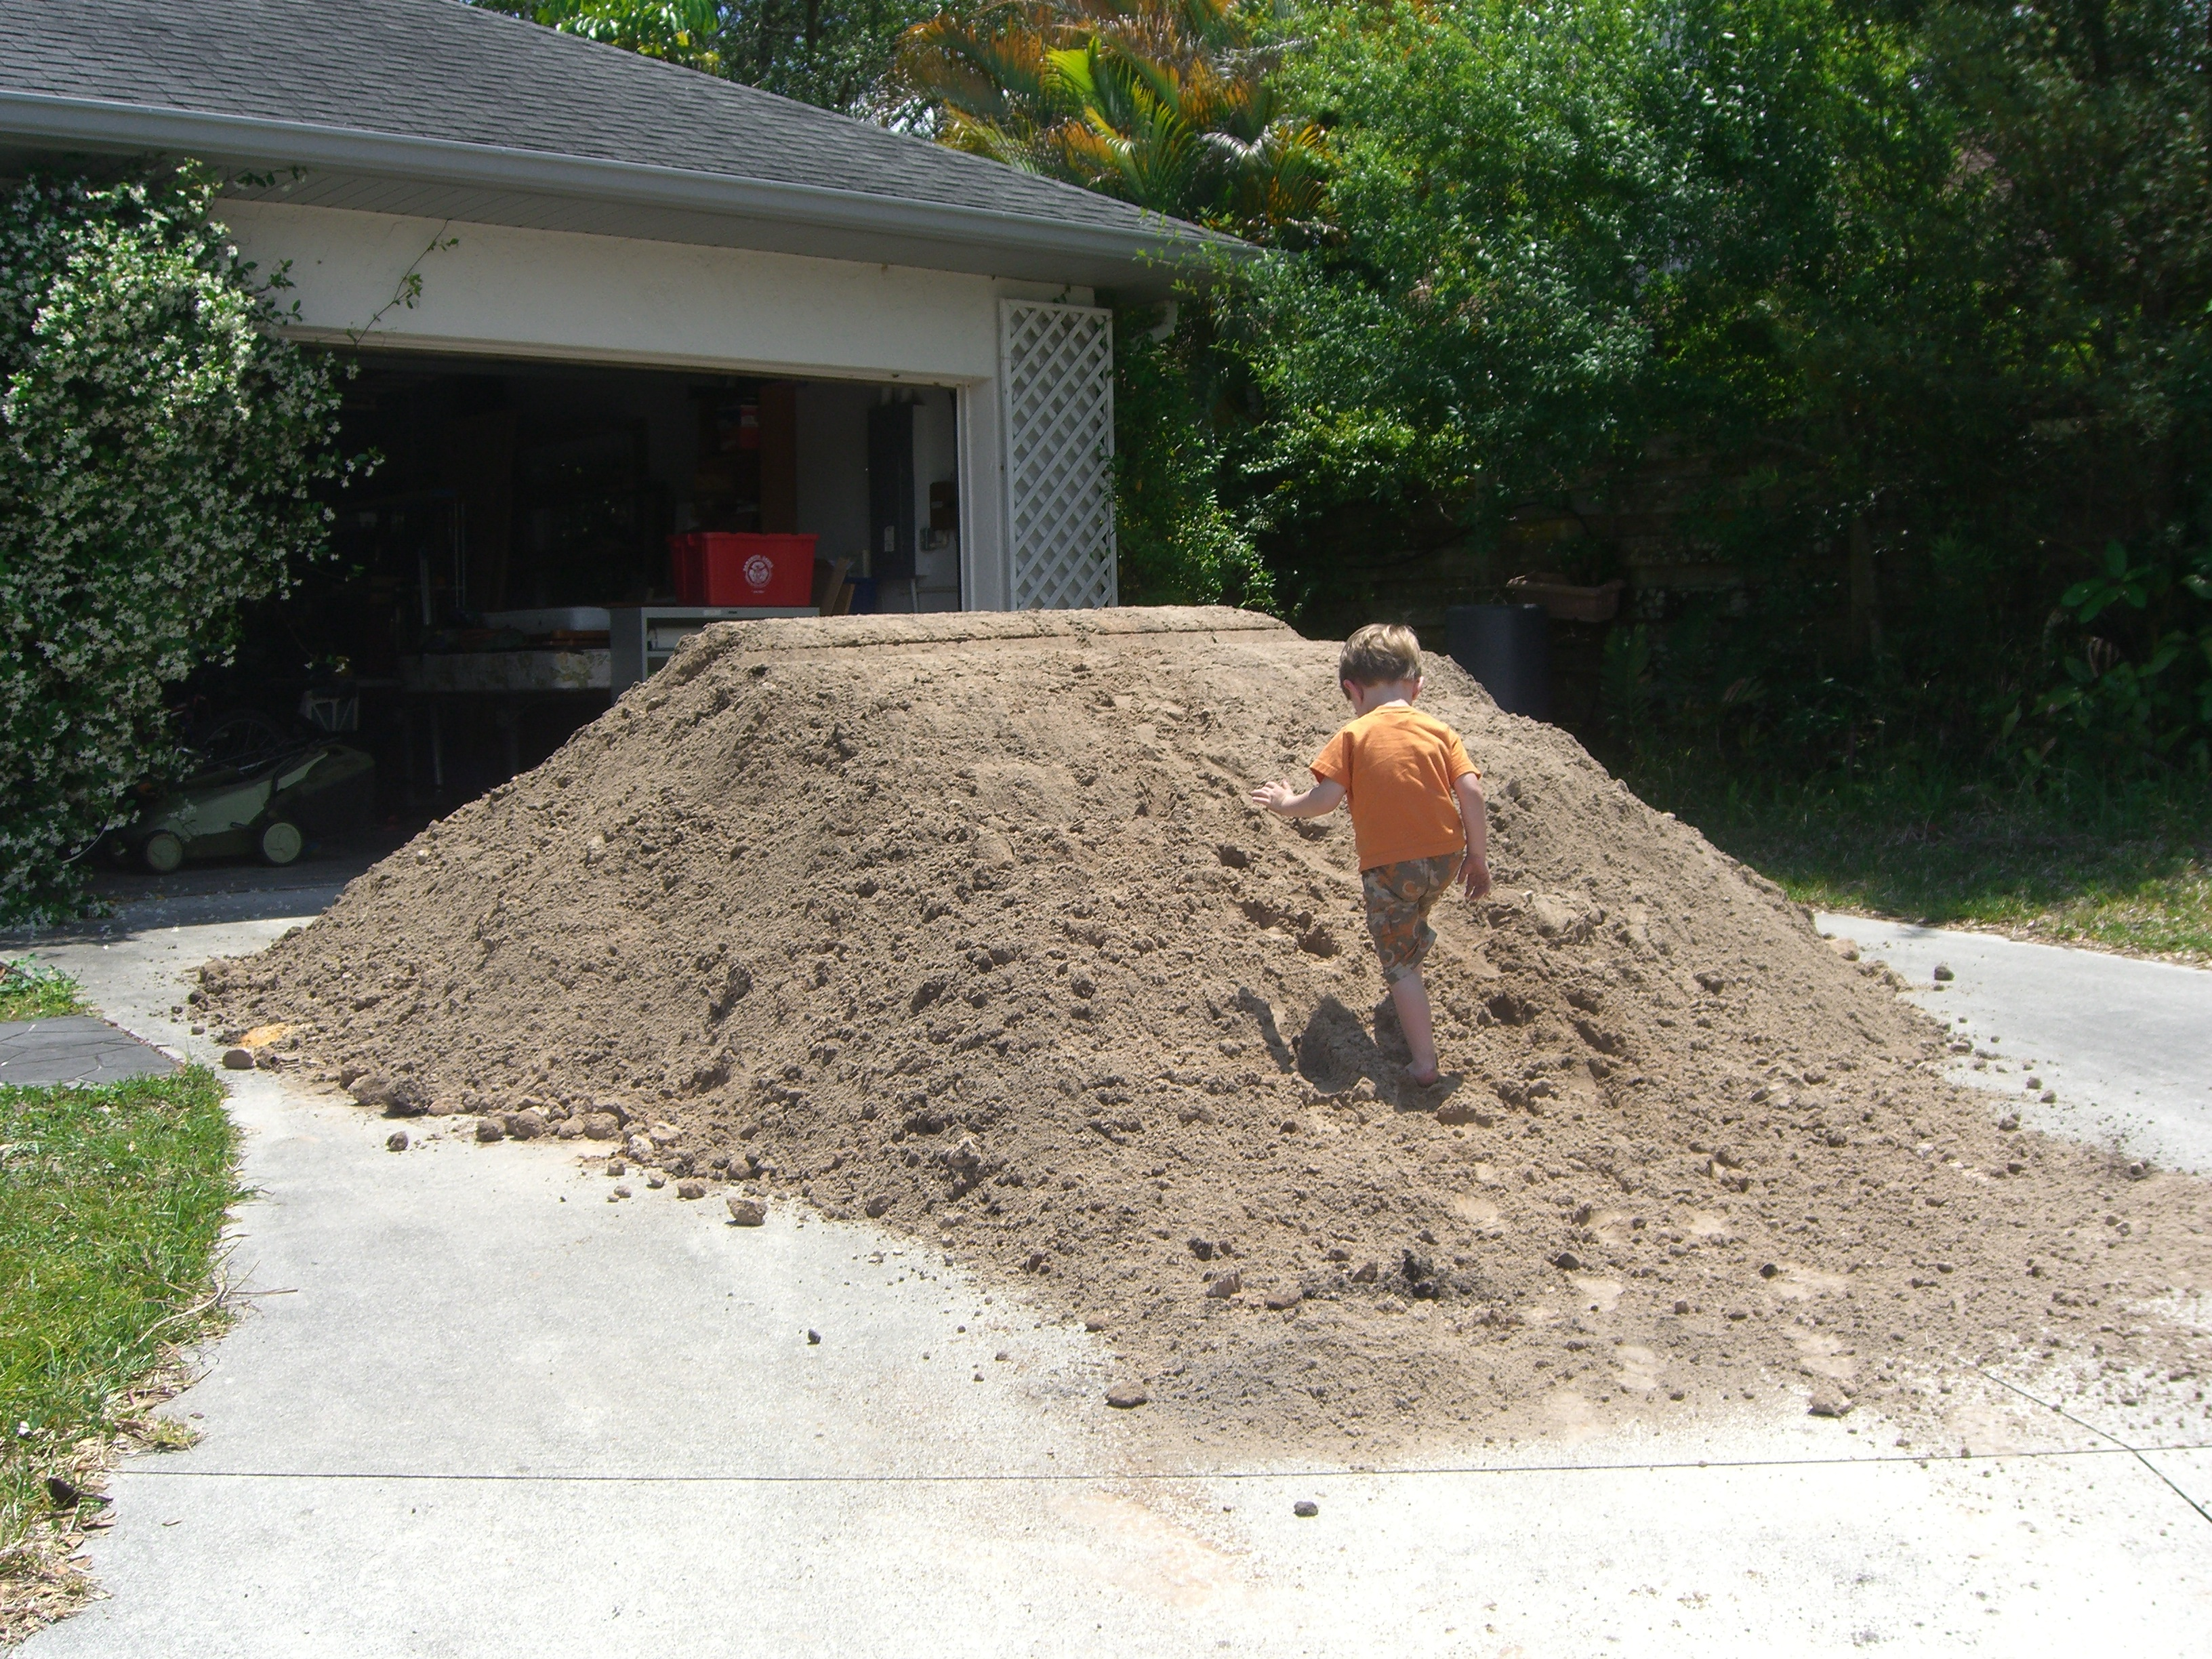 Ordered a truckload of fill. It had to be dumped on our driveway since the backyard is inaccessible. This turned out to be a wonderful playground for Liam and his cousins